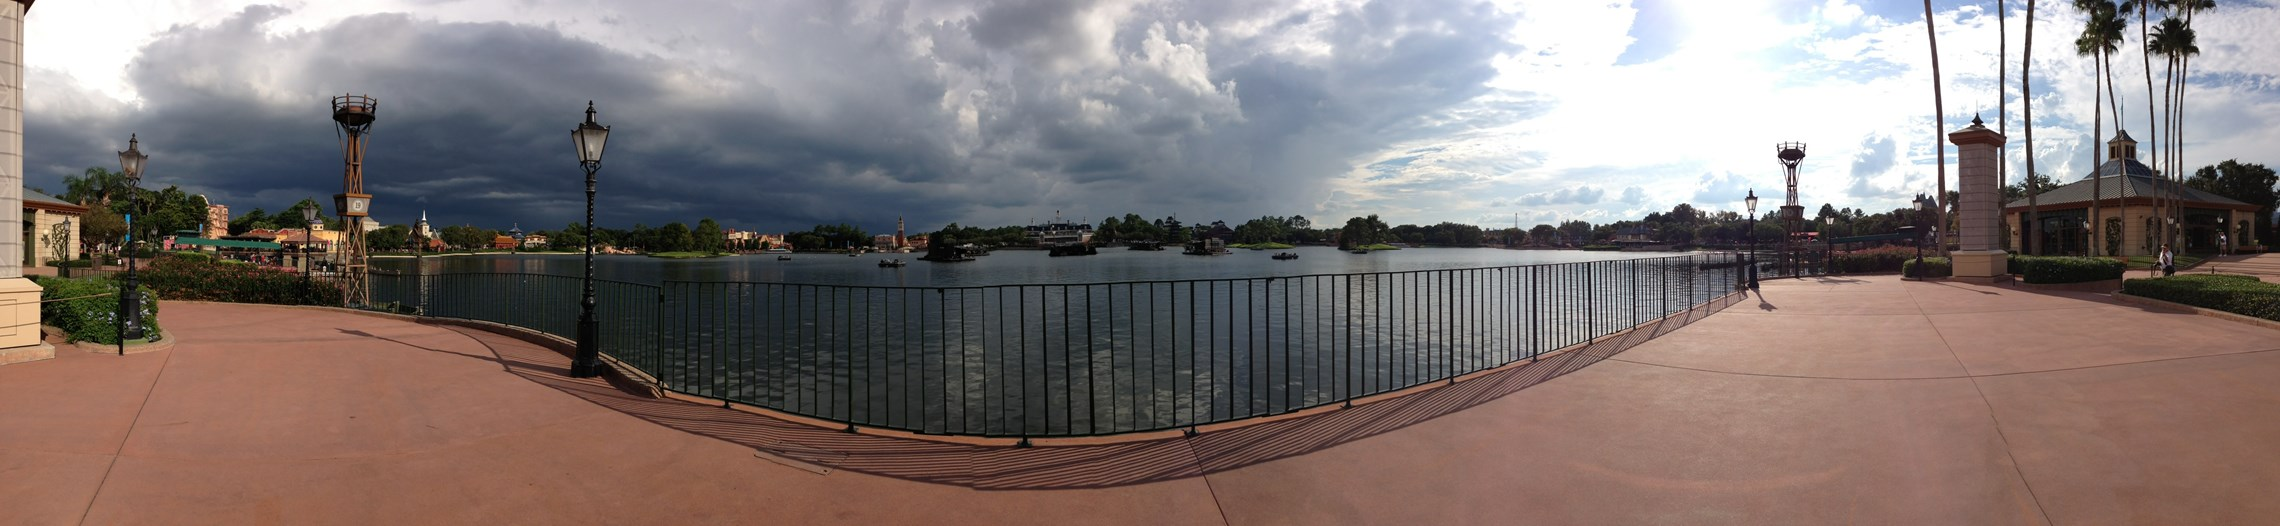 iPhone 5 demo photos at Epcot